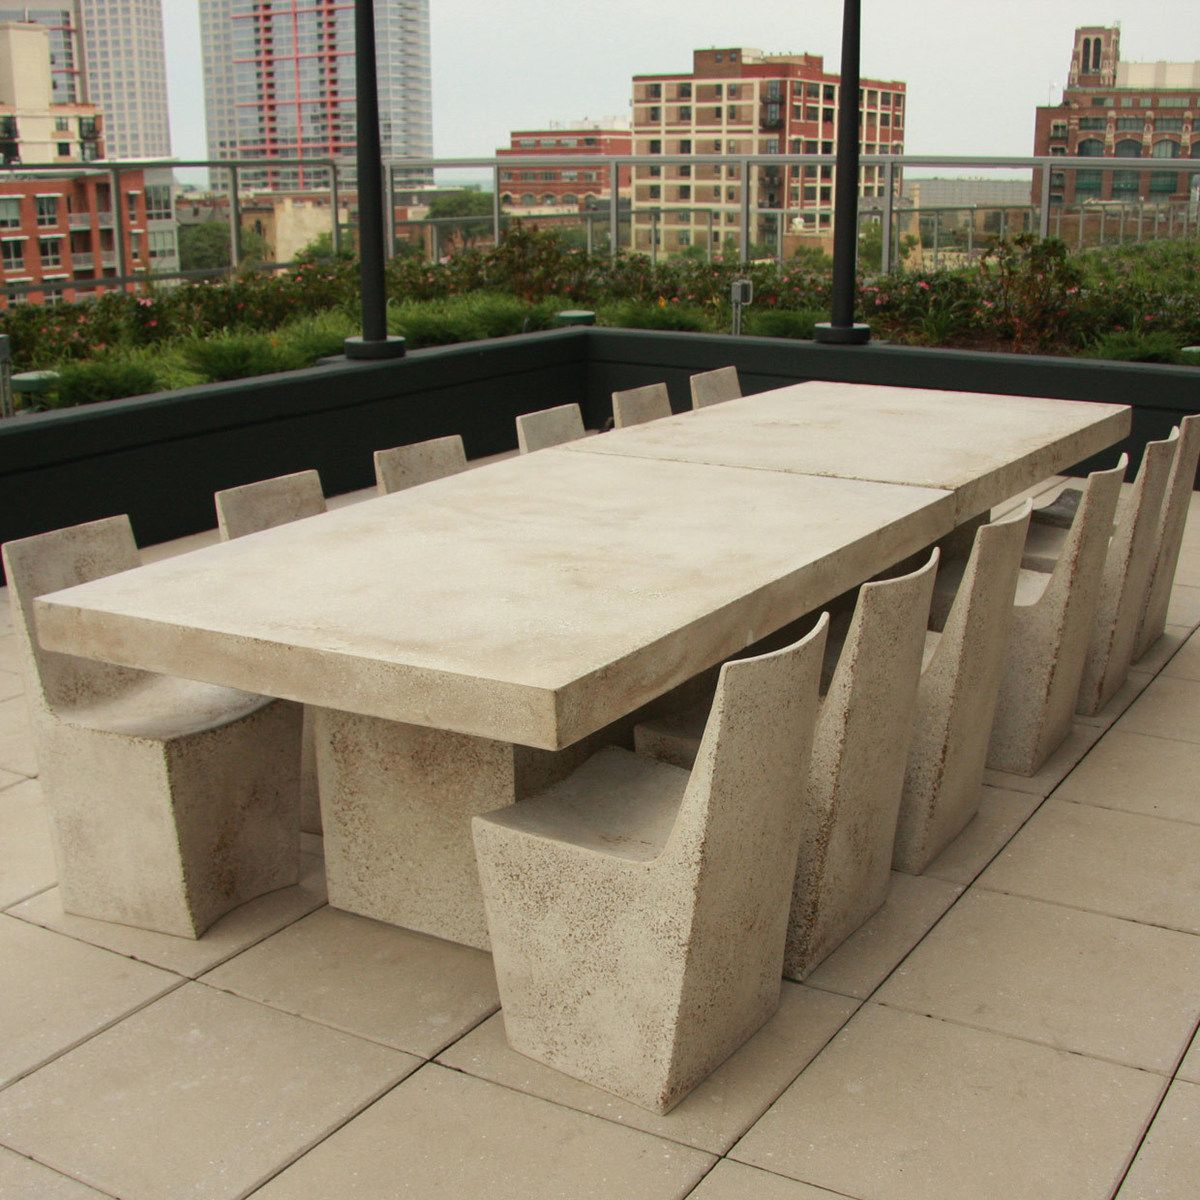 Stone Slab Dining Table Concrete Light